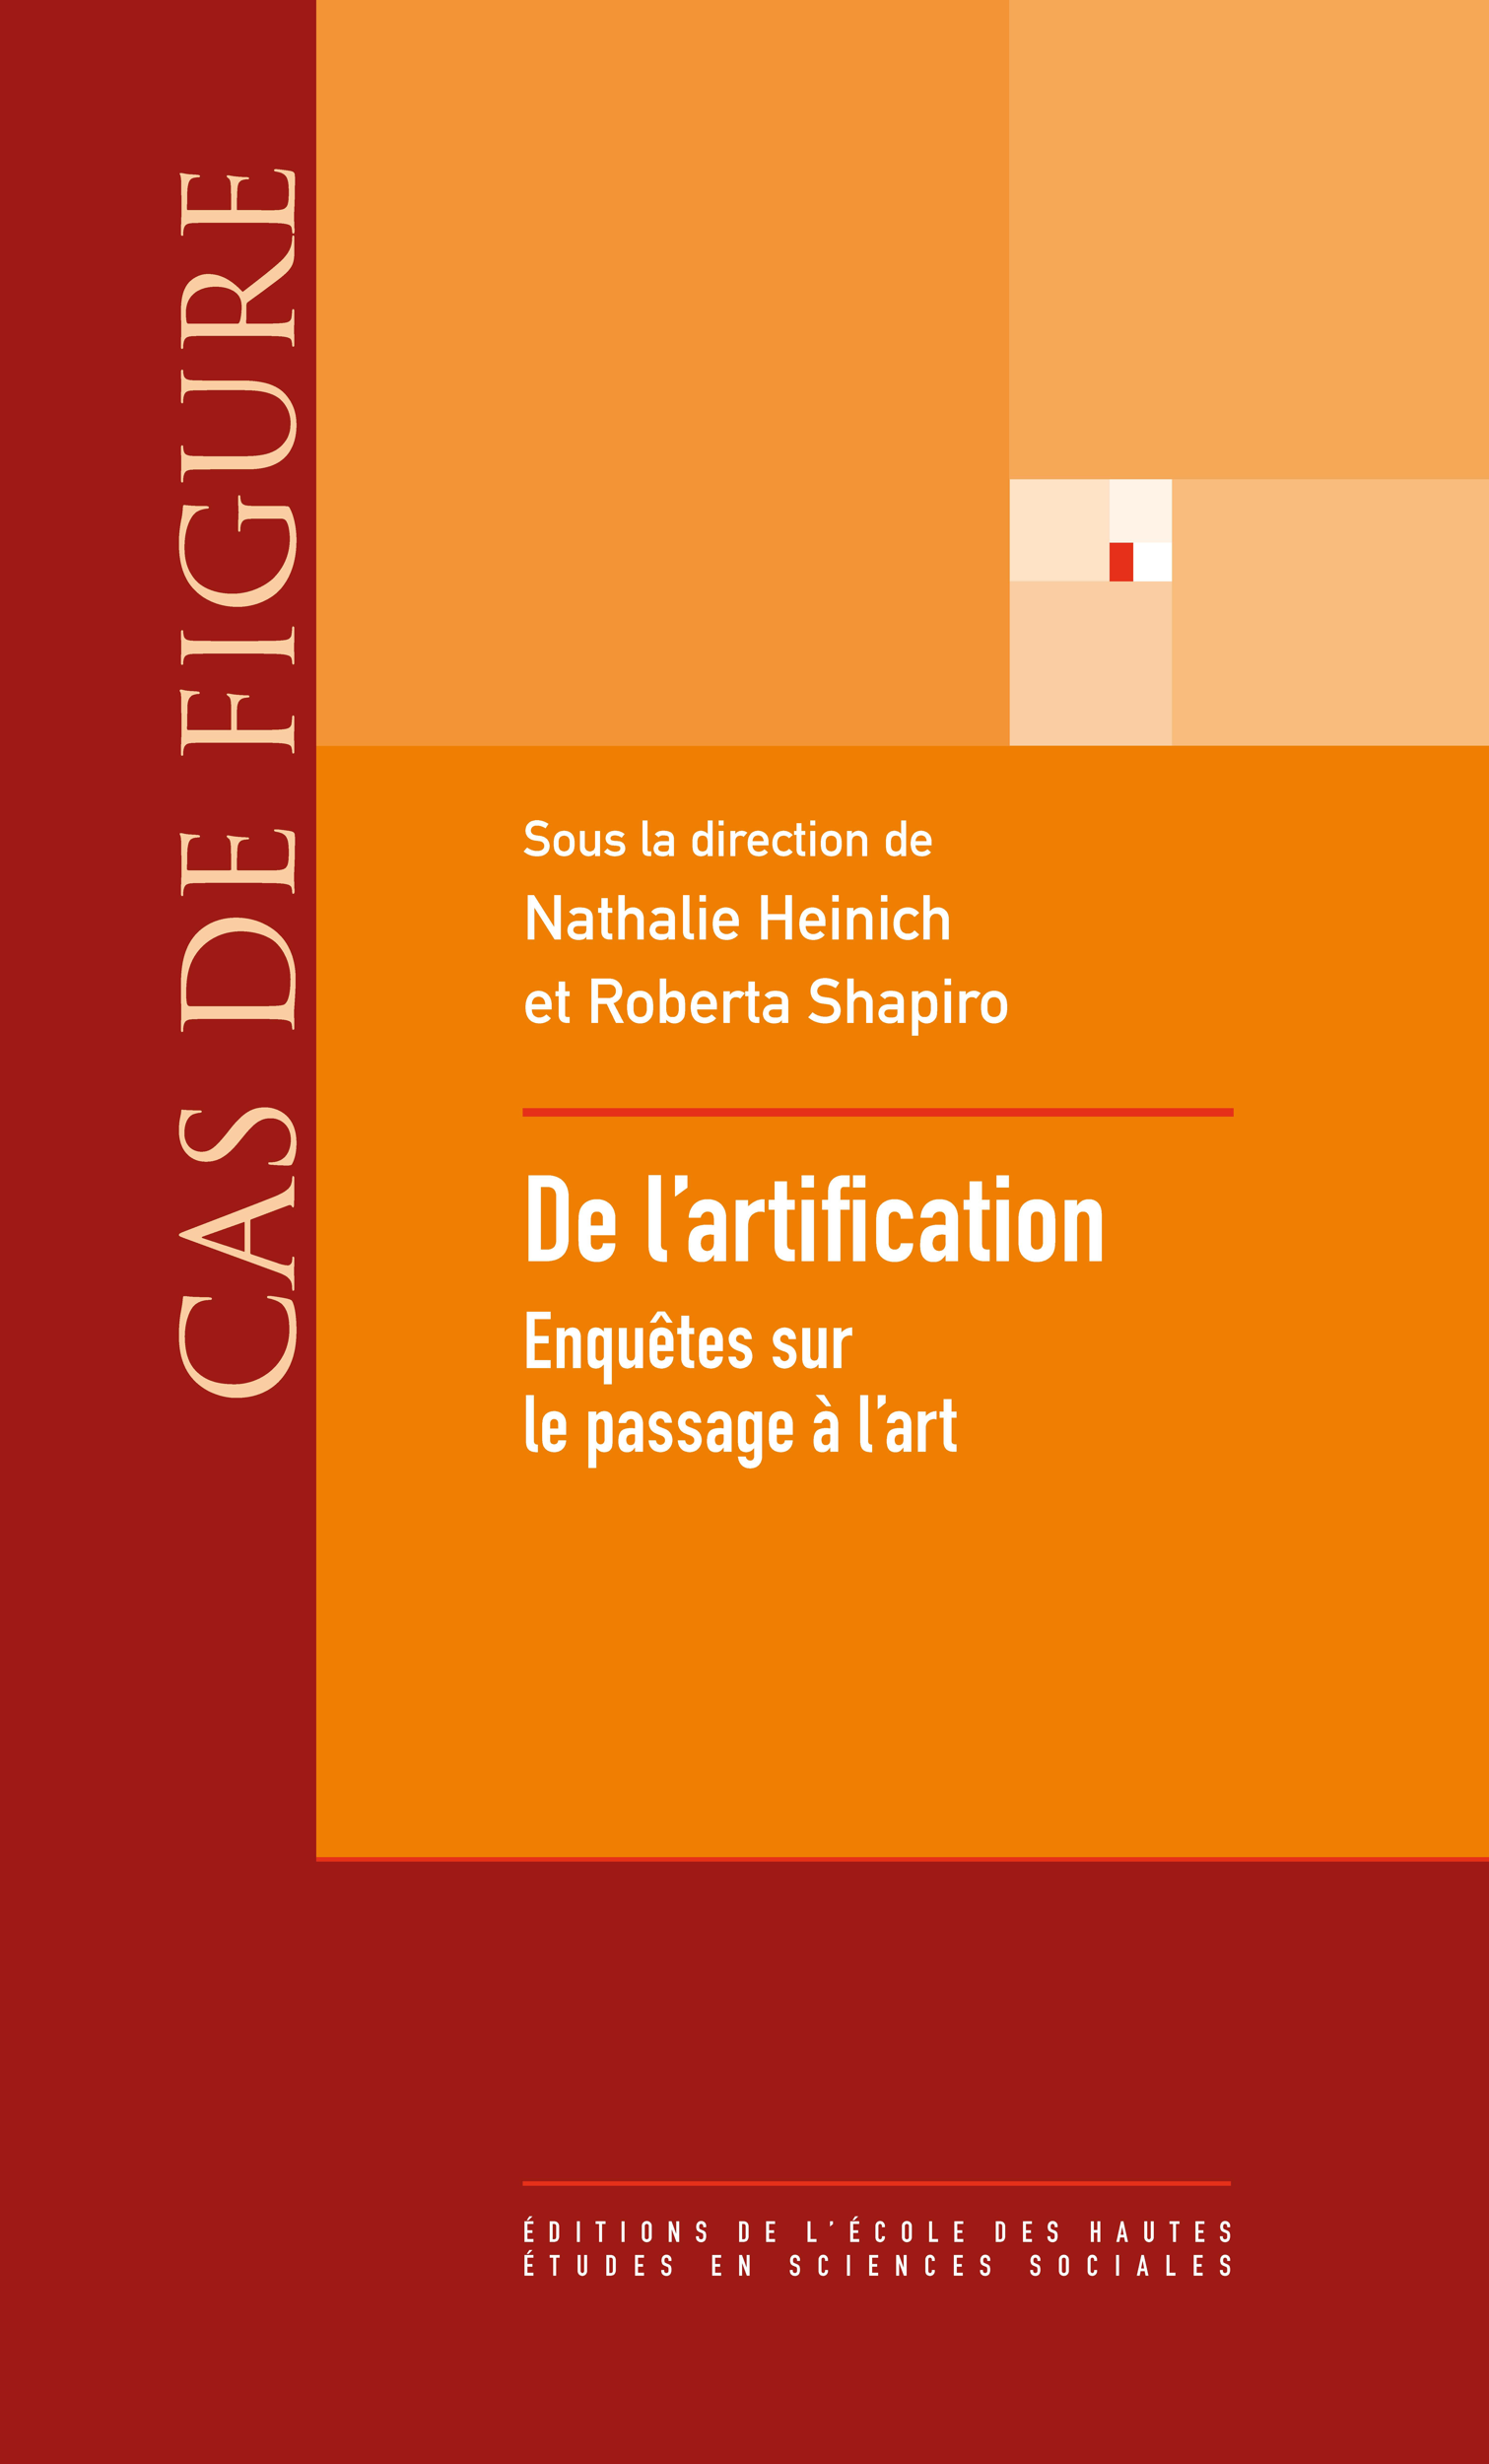 De l'artification